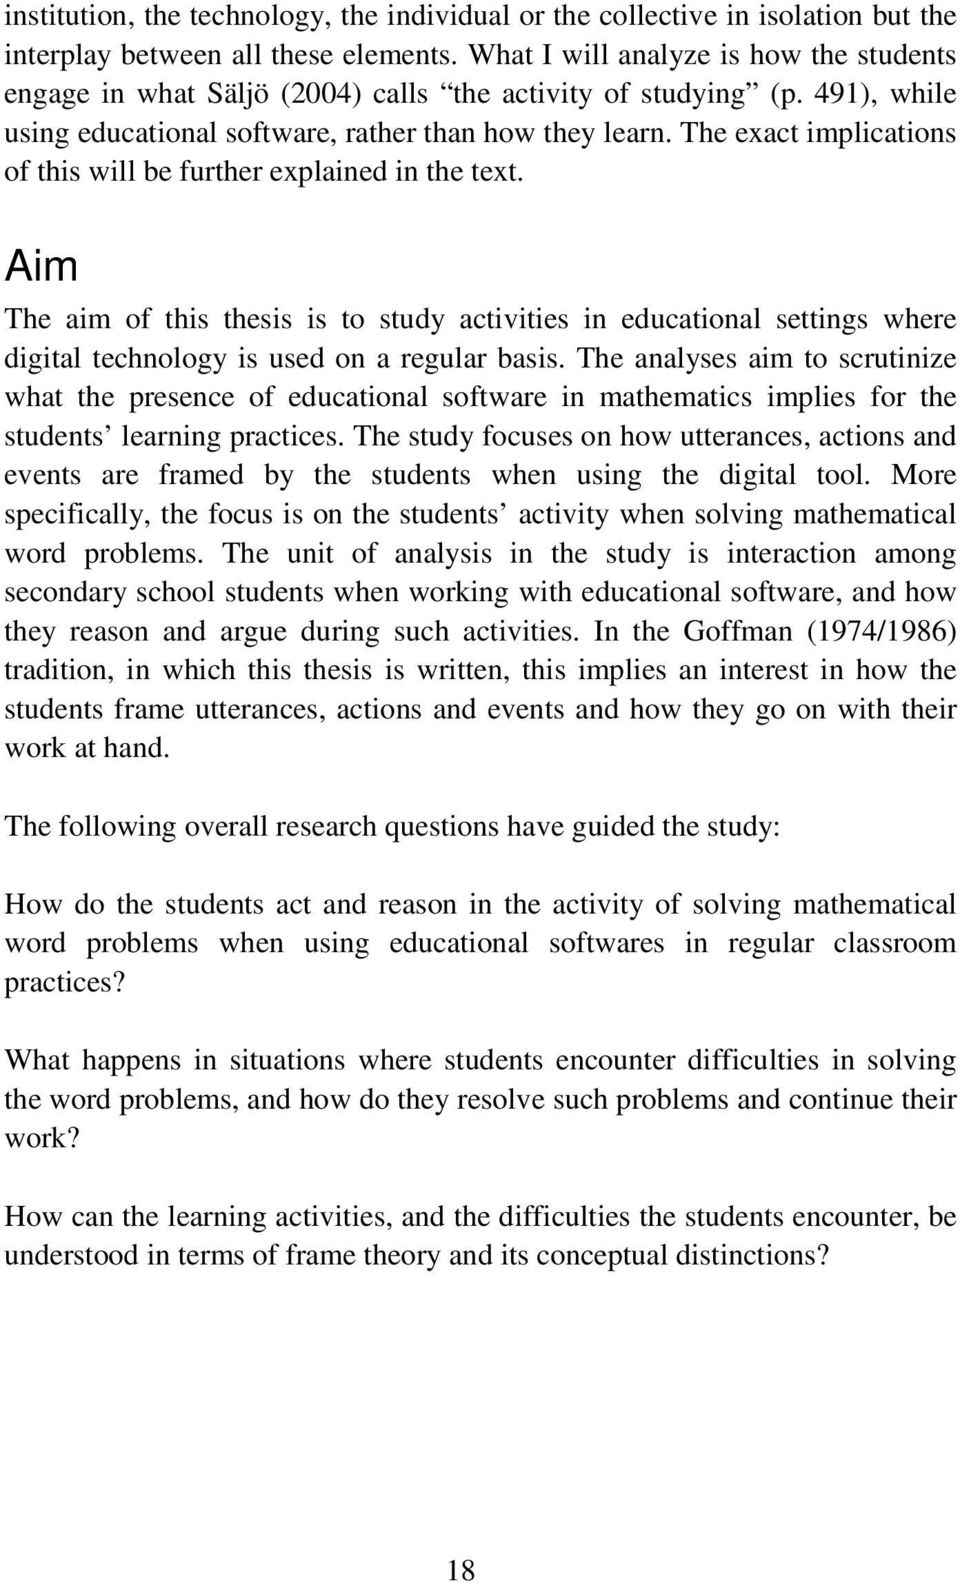 The exact implications of this will be further explained in the text. Aim The aim of this thesis is to study activities in educational settings where digital technology is used on a regular basis.